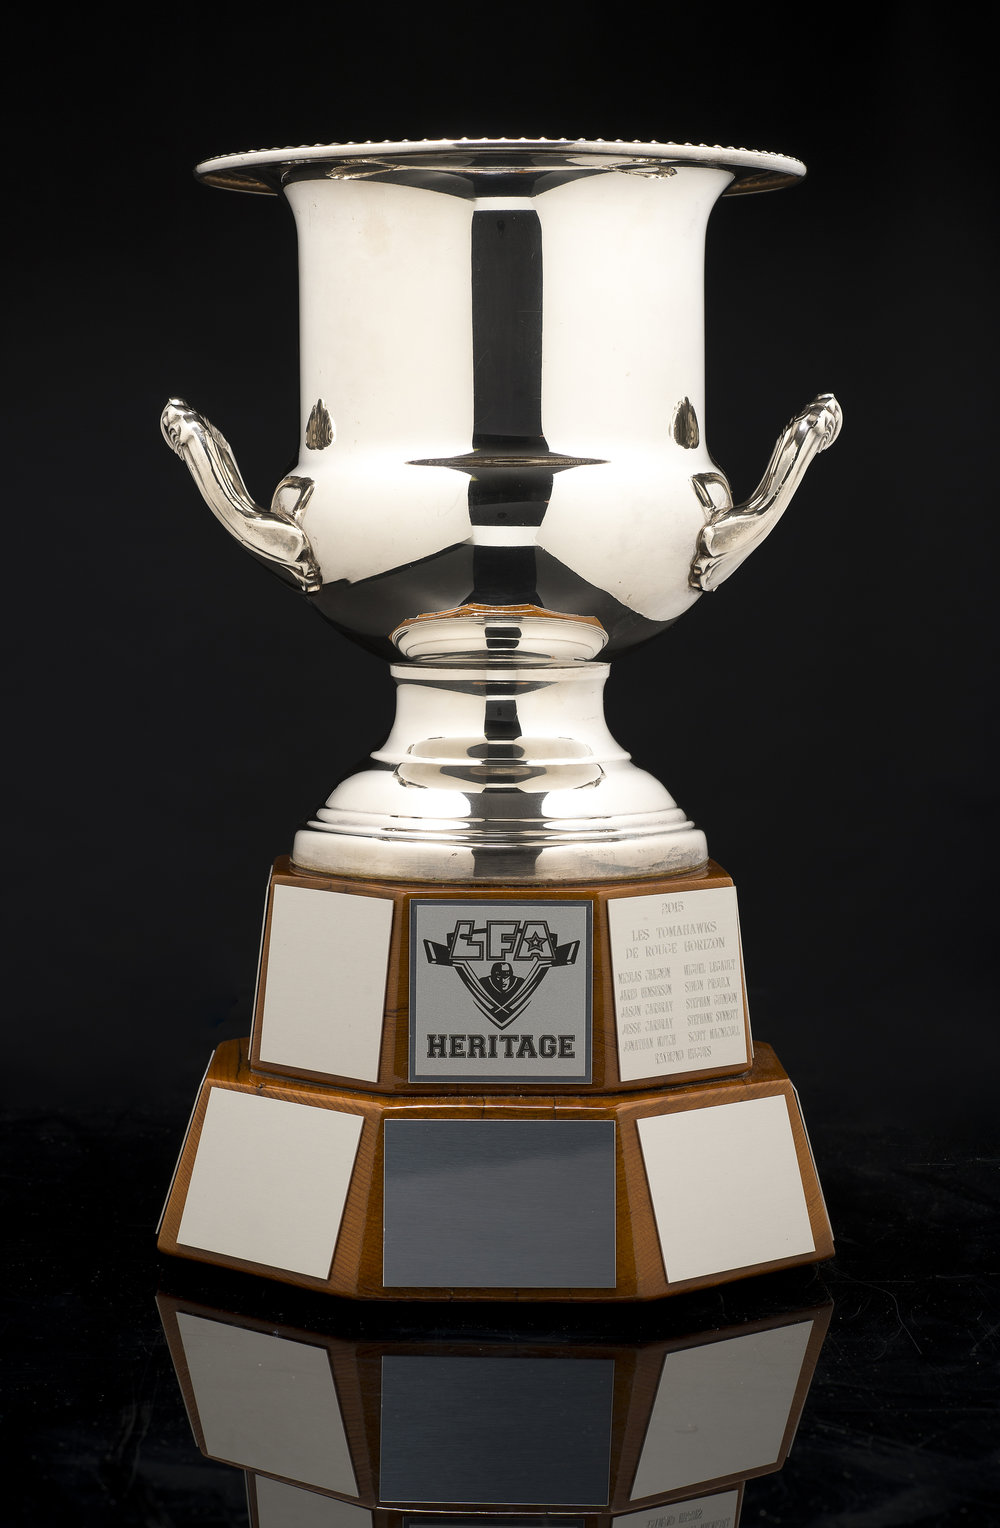 the heritage cup for summer season champs (photo bruno petrozza)